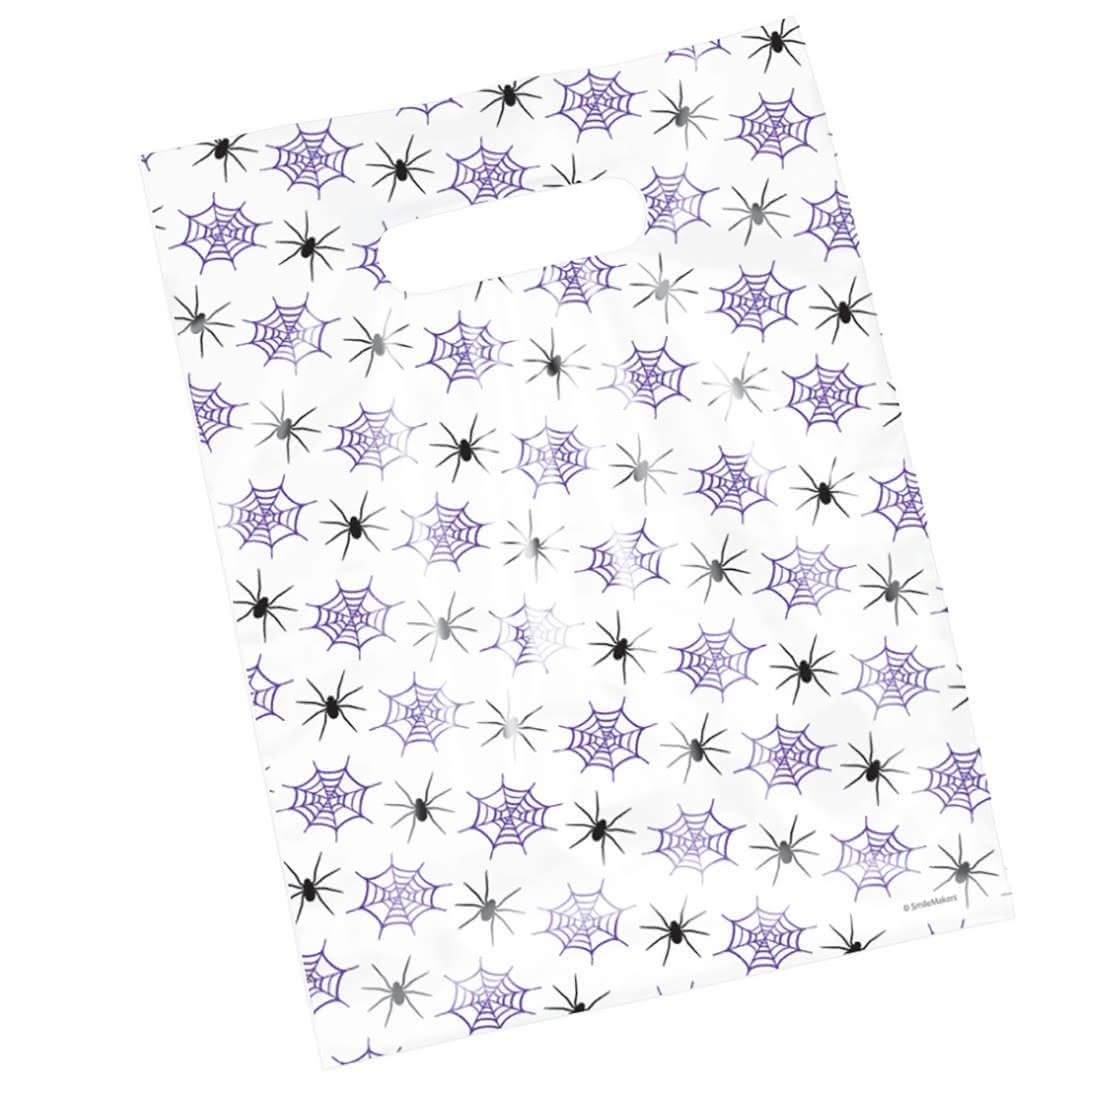 Spiders and Webs Scatter Print Bags [image]